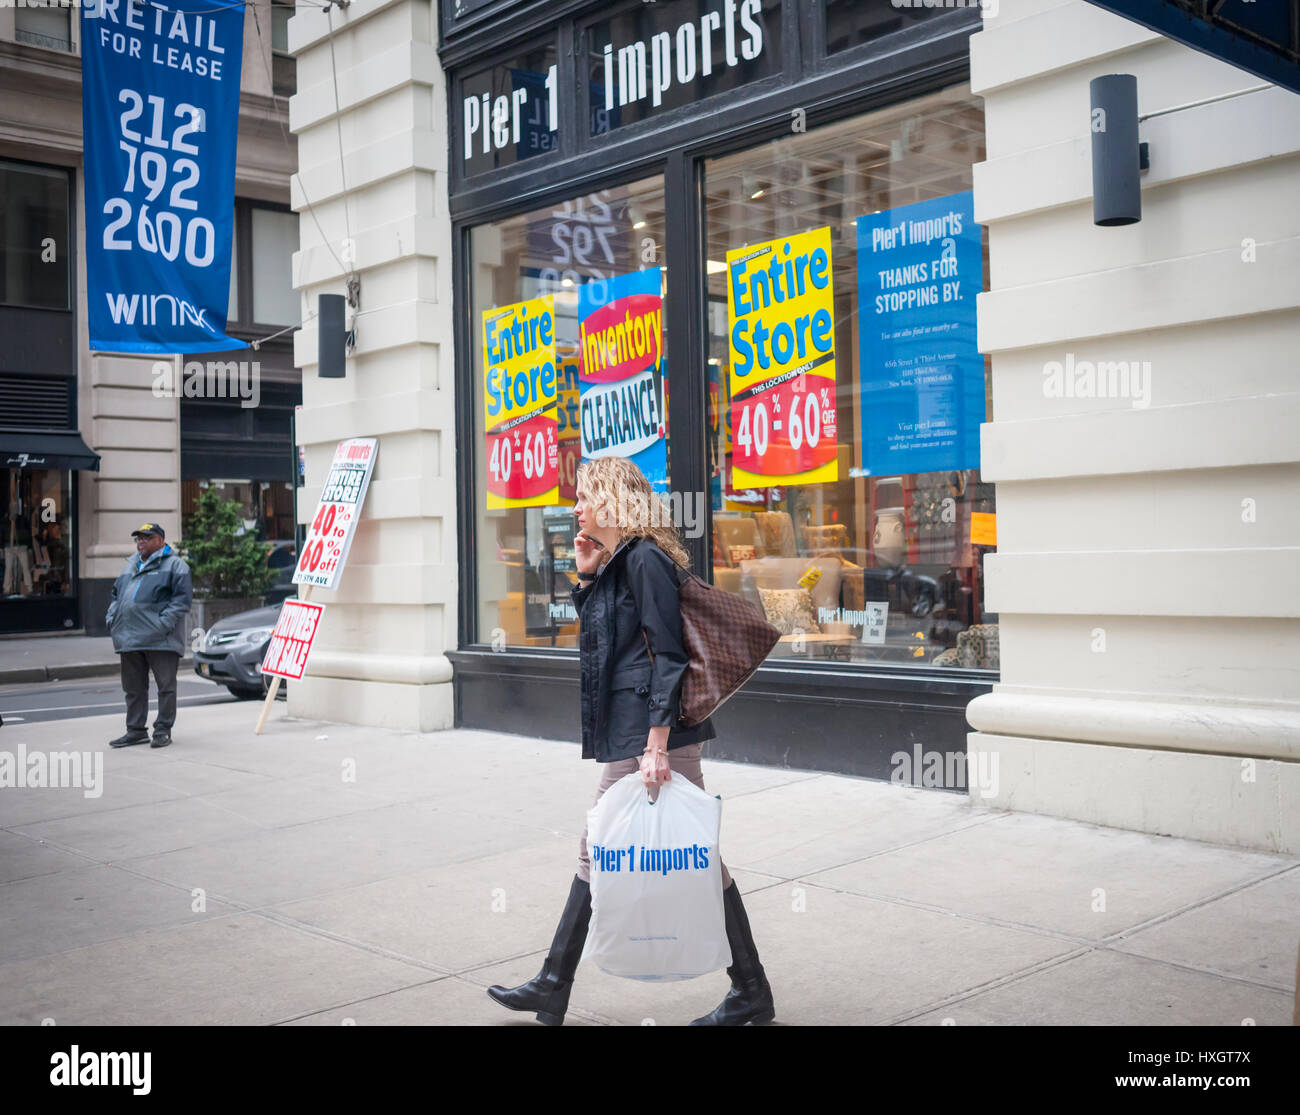 A Pier 1 Imports store on lower Fifth Avenue in New York on Saturday, March 25, 2017 is festooned with signs informing - Stock Image